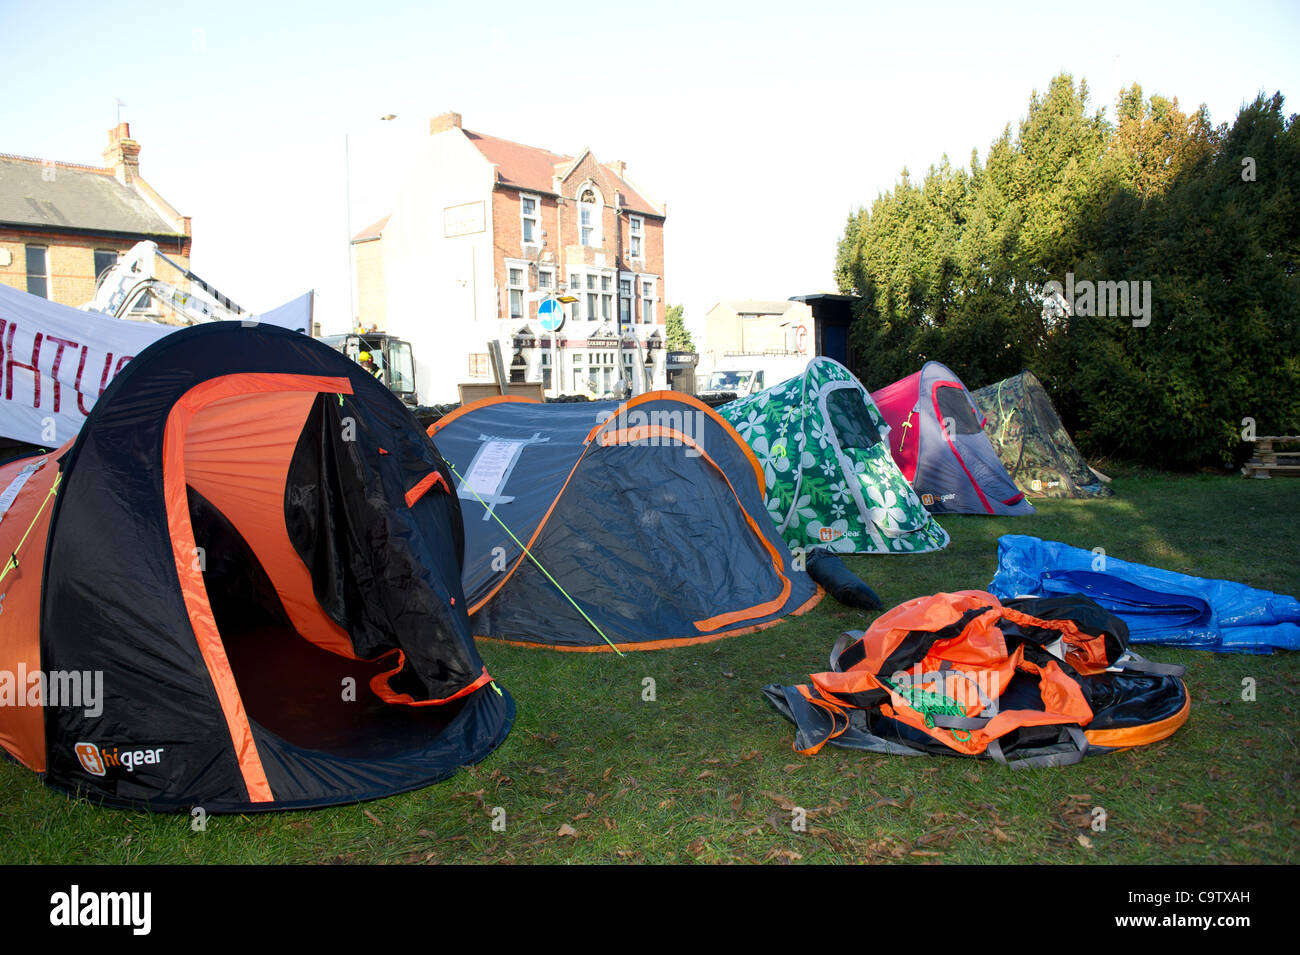 21st February 2012. Occupy Southend has set up its camp in the grounds of St.Mary's Church near the town centre. Stock Photo